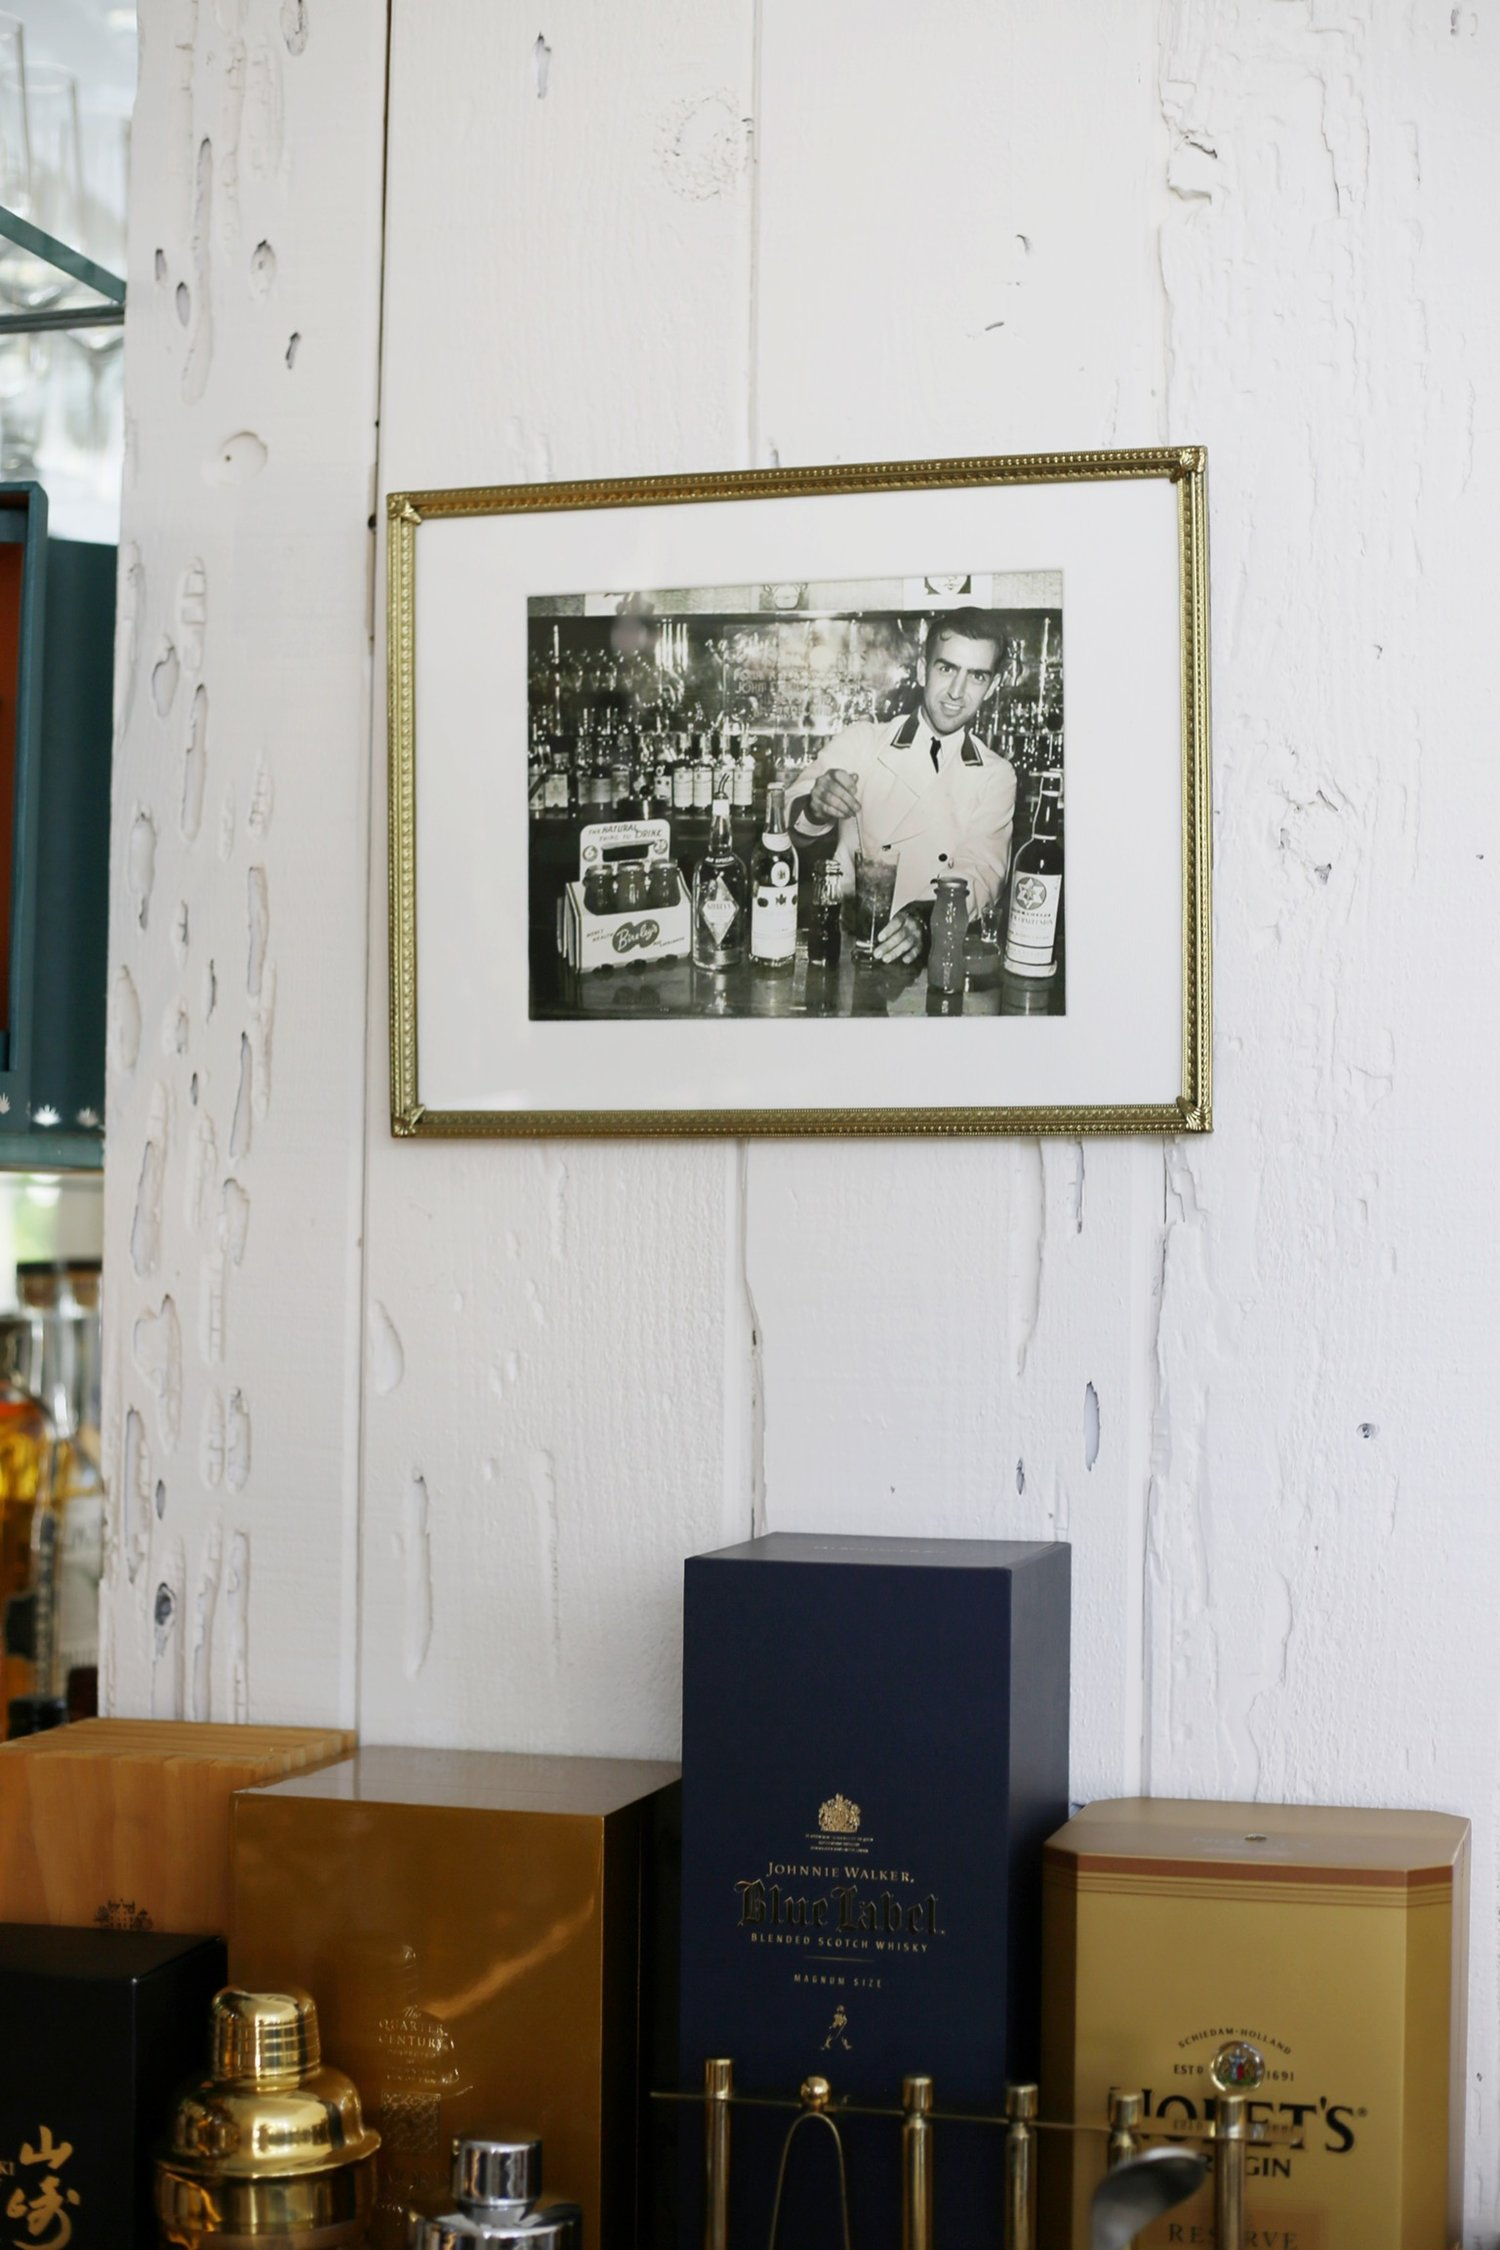 Original photography of Lloyd Vance, grandfather of Jeff Vance, bartending at a bar in Hollywood in the 1940s hanging up in original bar by Jeff Vance.